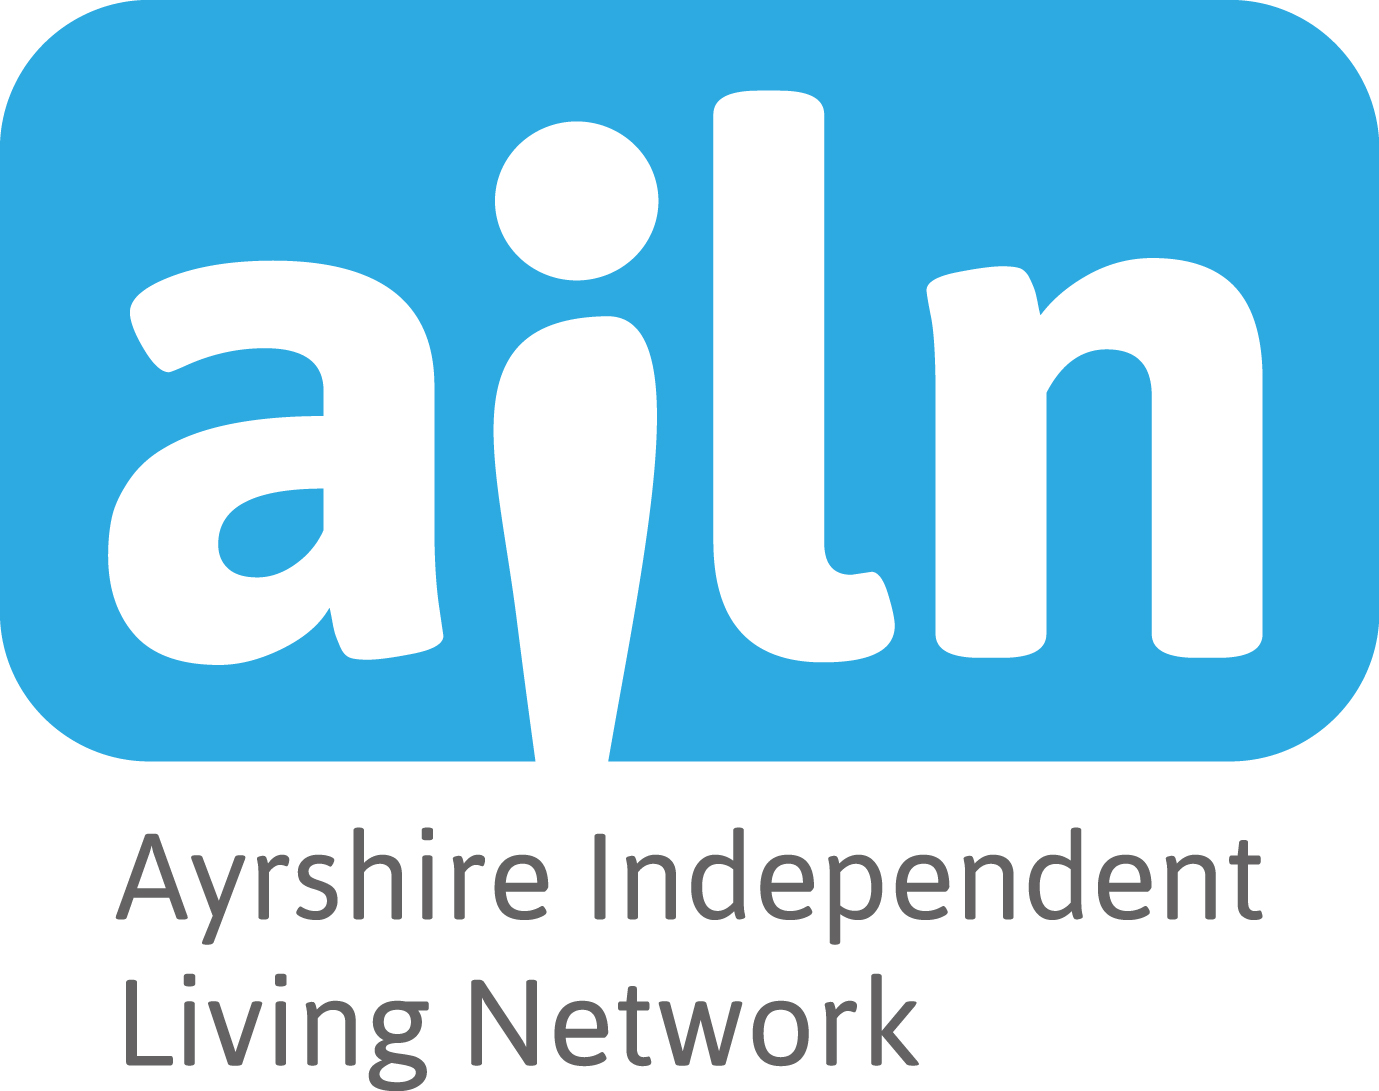 Ayrshire Independent Living Network (AiLN)